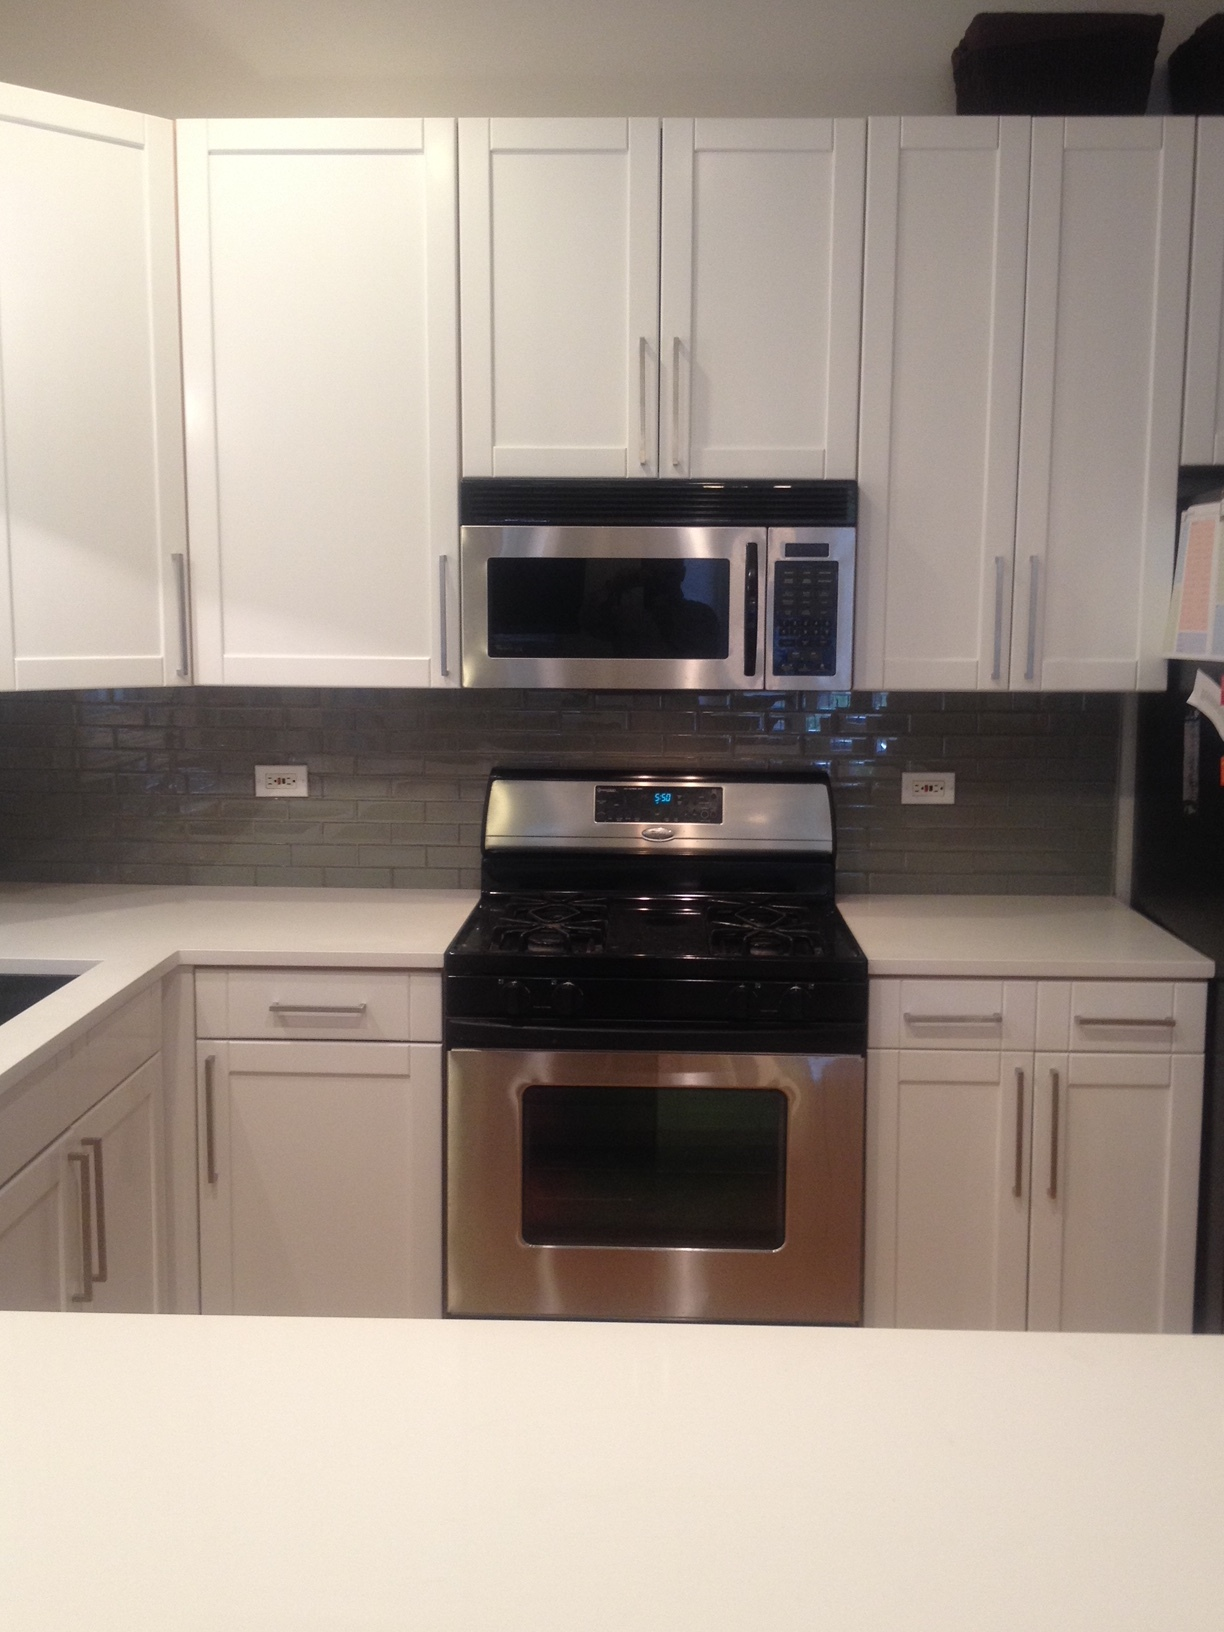 Kitchen Remodel: Painted Cabinets, New Backsplash & Counters